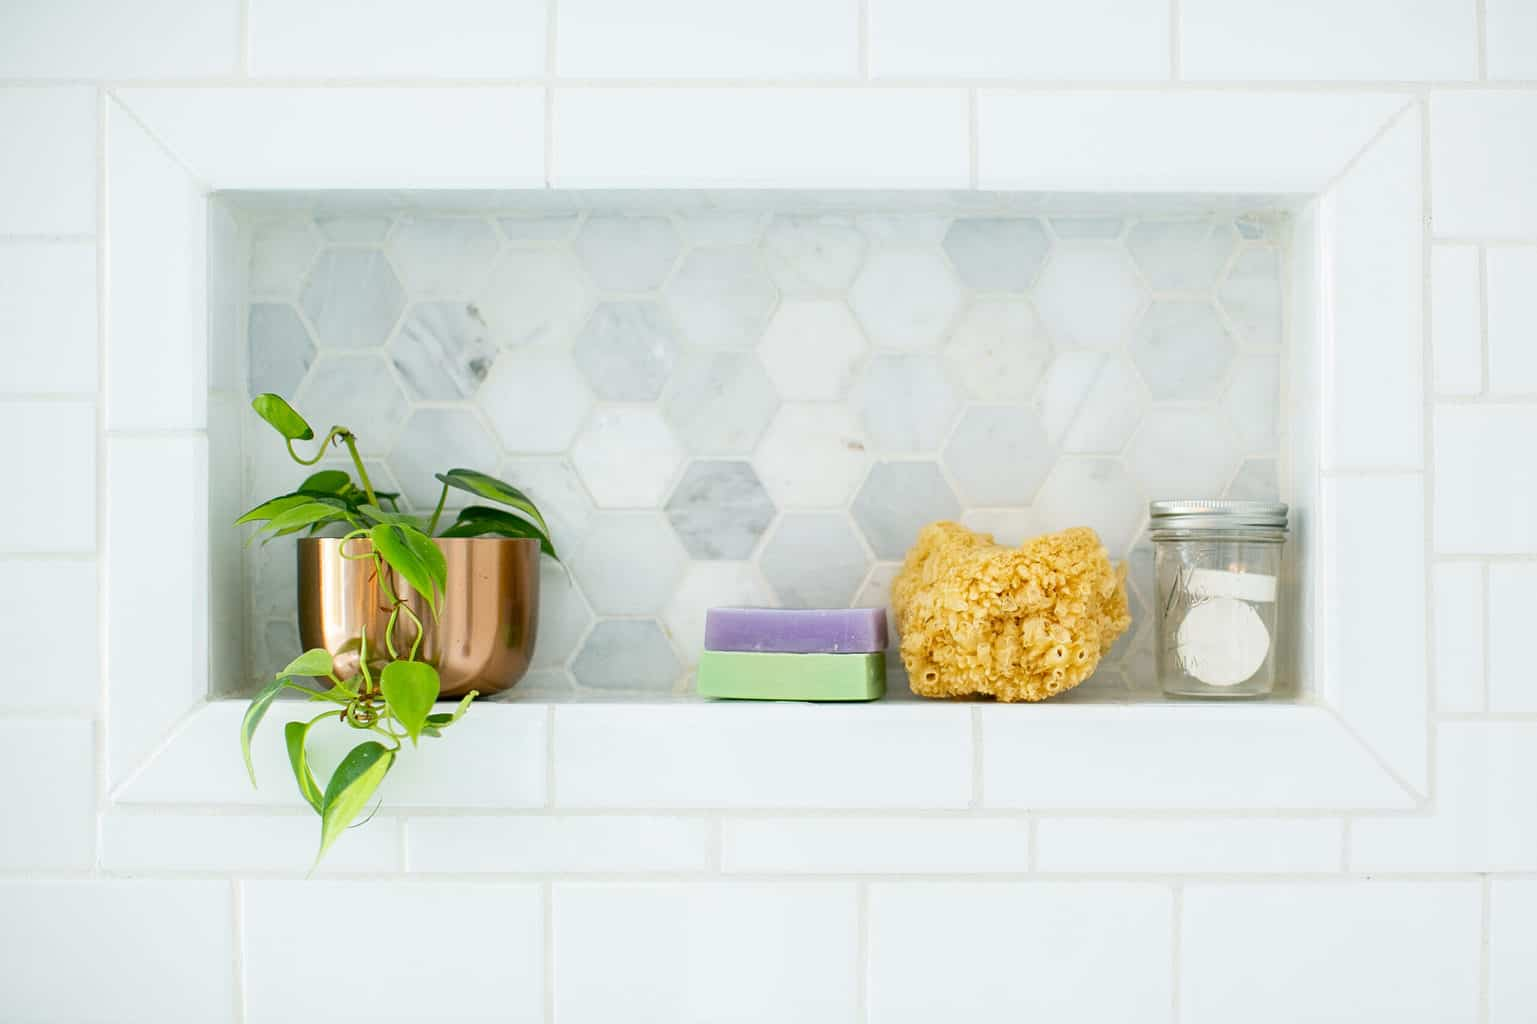 Yes, you can add plants to your shower